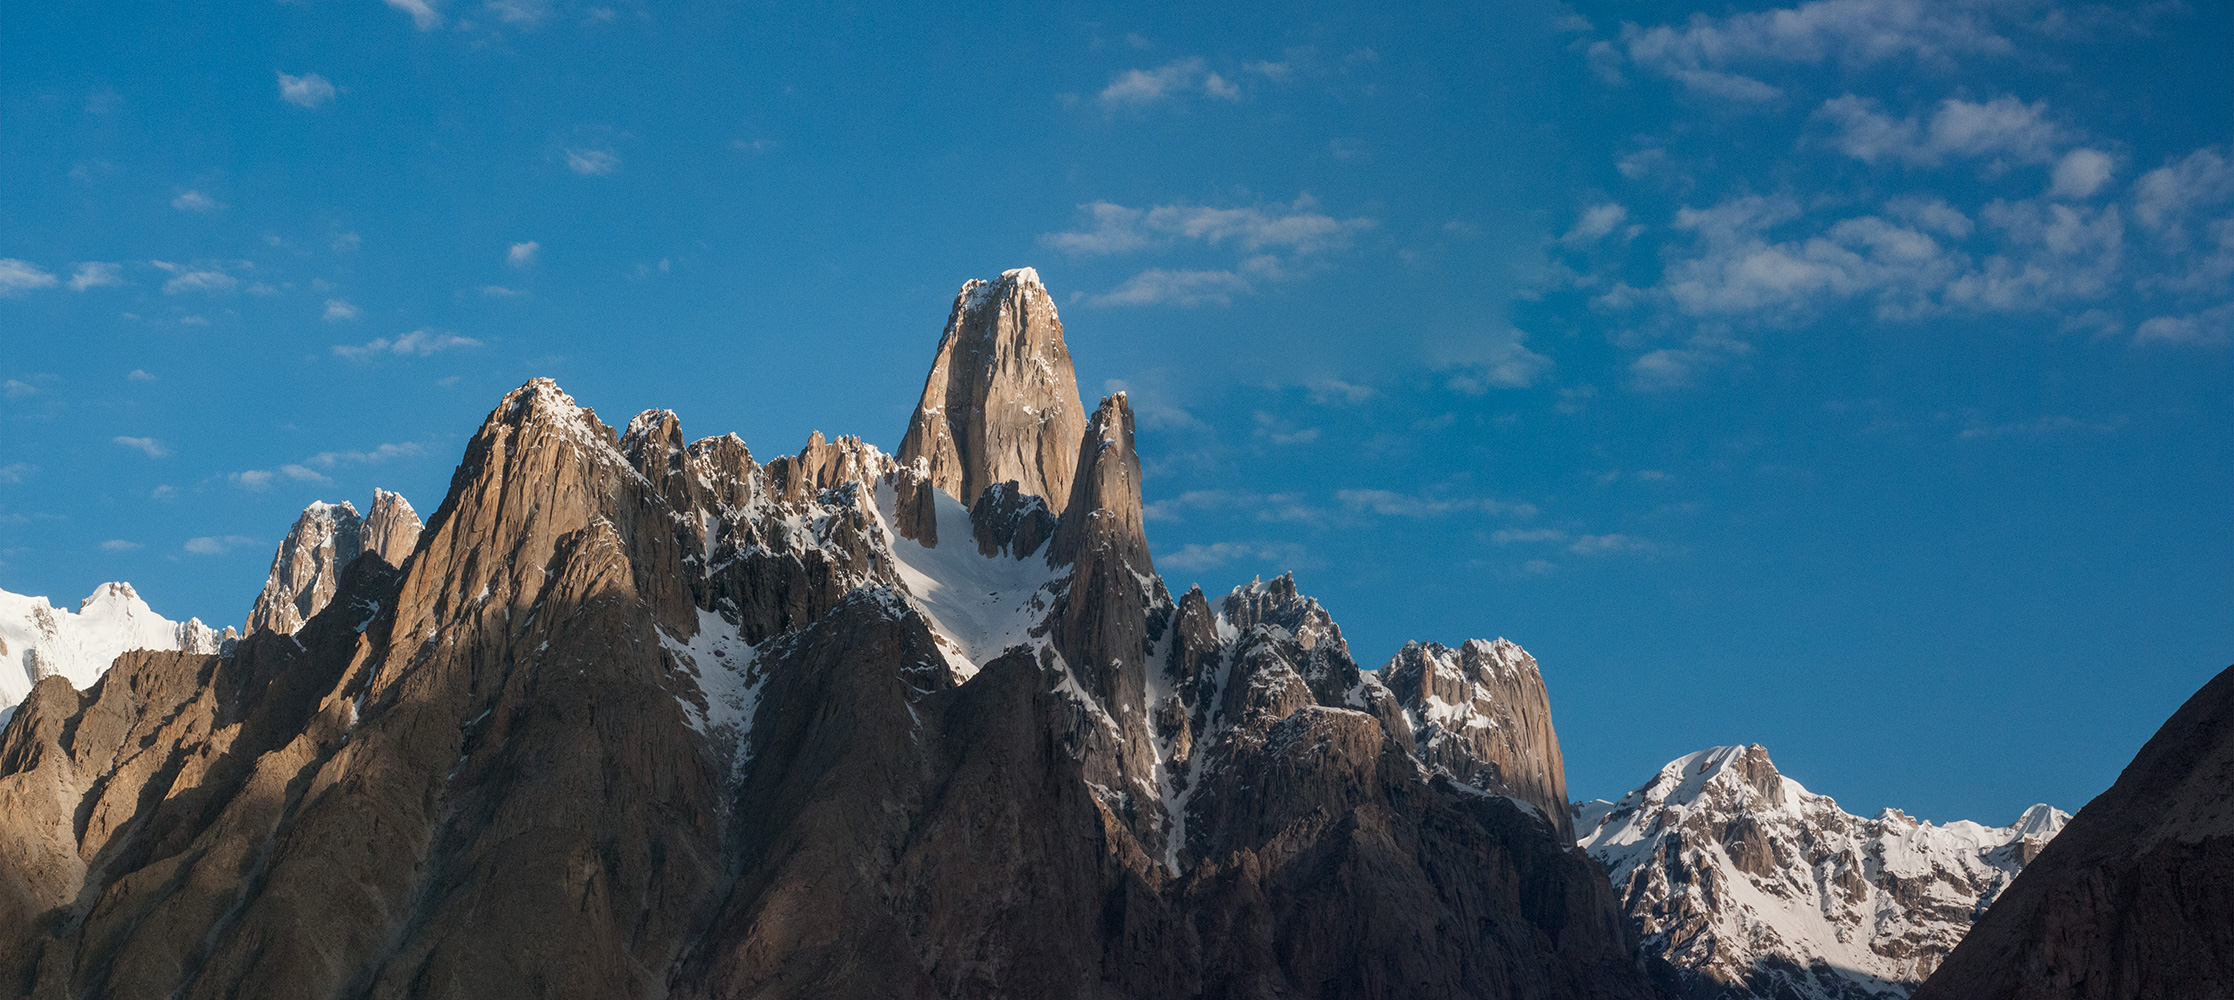 A stitch of two photographs taken in early morning light from Hobutse camp on the Baltoro glacier. Pleased with this one!Nikon D300, 60mm